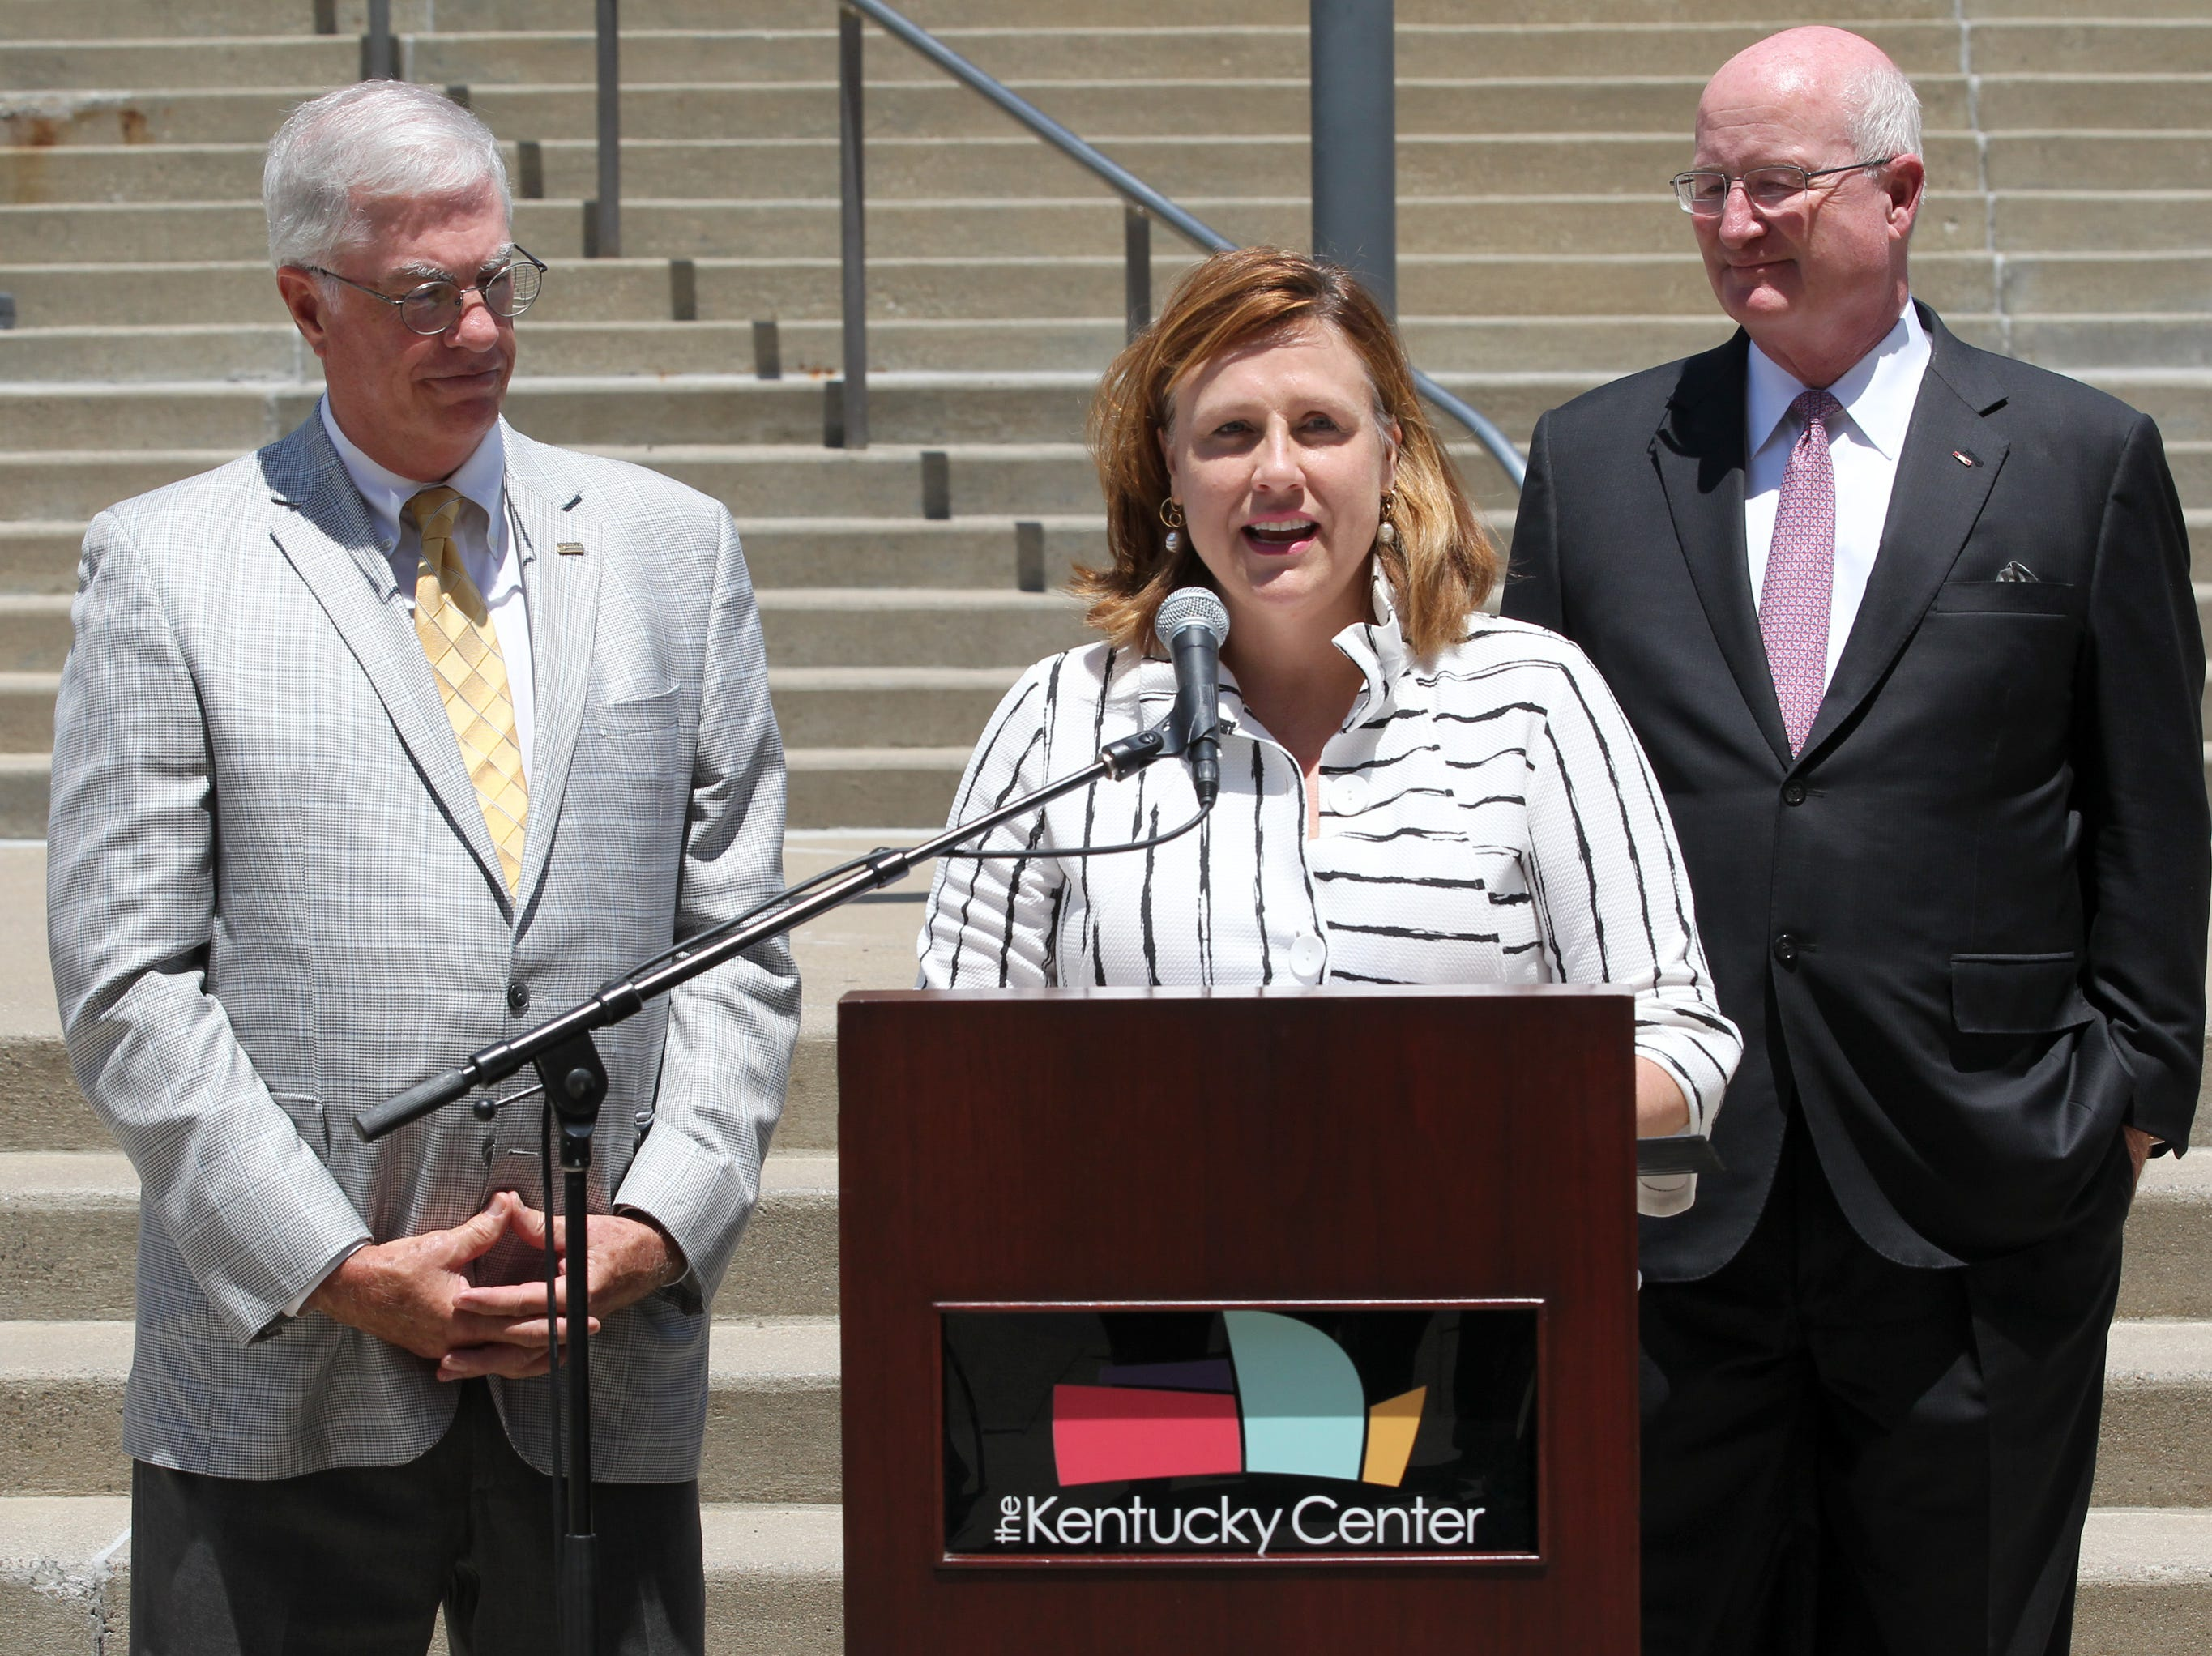 Kentucky Center President Kim Baker addresses the crowd during a press conference at the Kentucky Center for the  Arts as the center's Chairman Bruce Ferguson (left) and Kentucky Secretary of Finance and Administration William Landrum look on in Louisville, Kentucky.    July 26, 2018